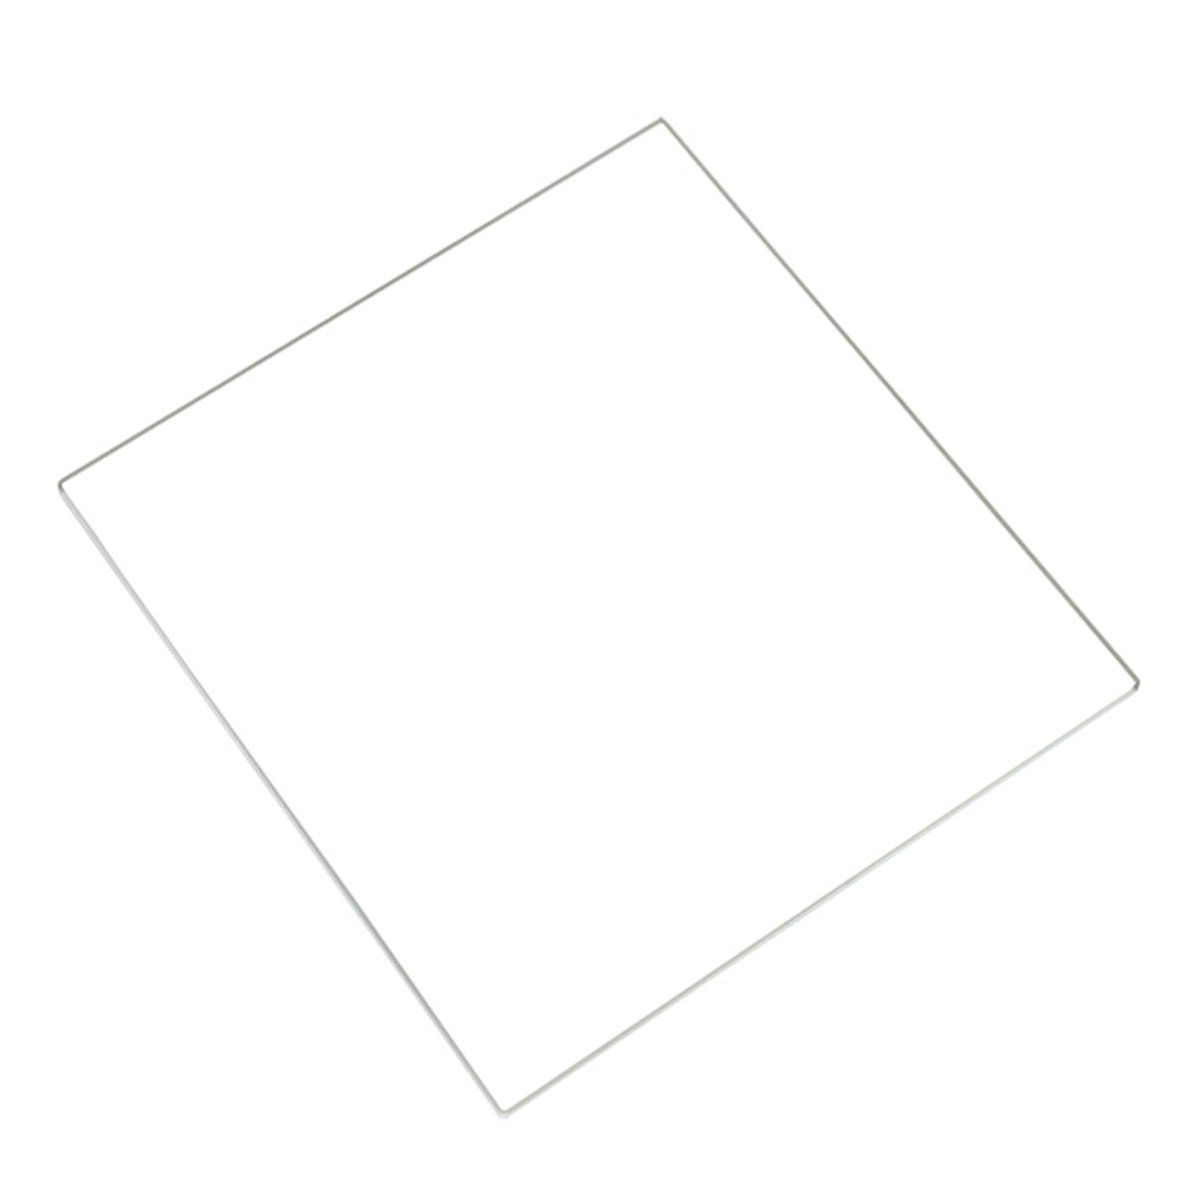 210x250x3mm Borosilicate Glass Build Plate For 3d Printer Heated